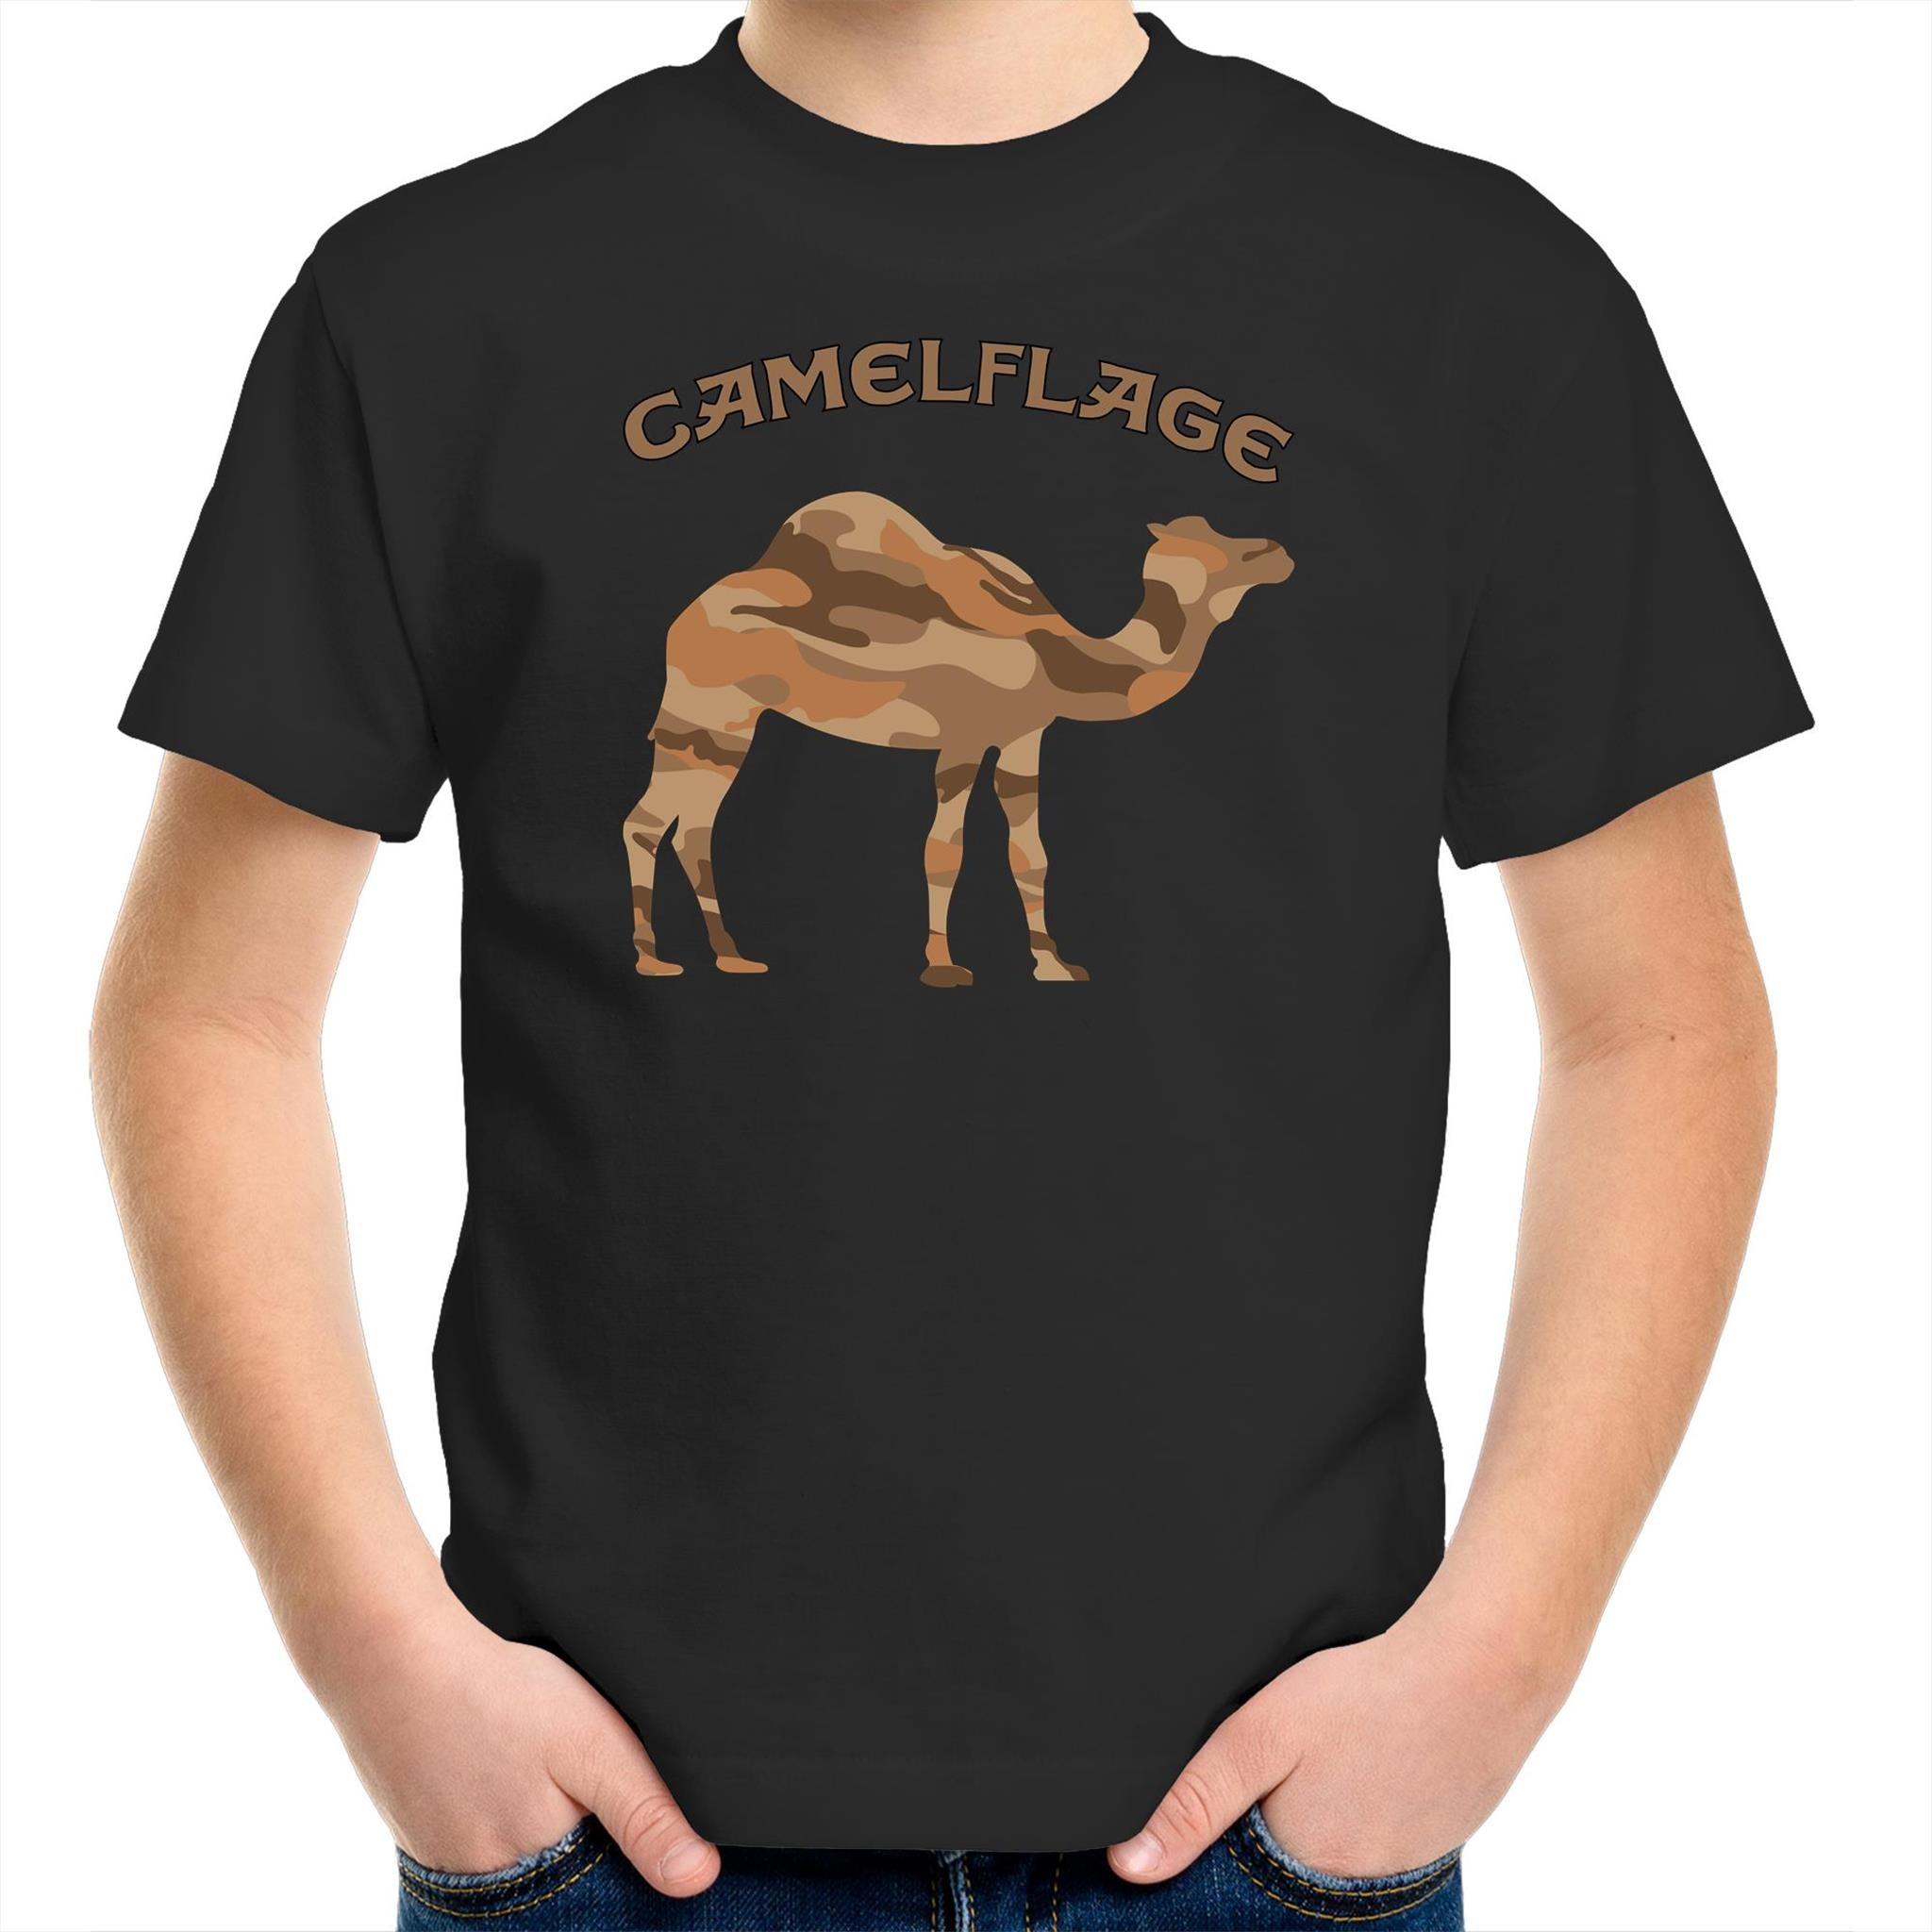 Kids Black Camelflage Shirt